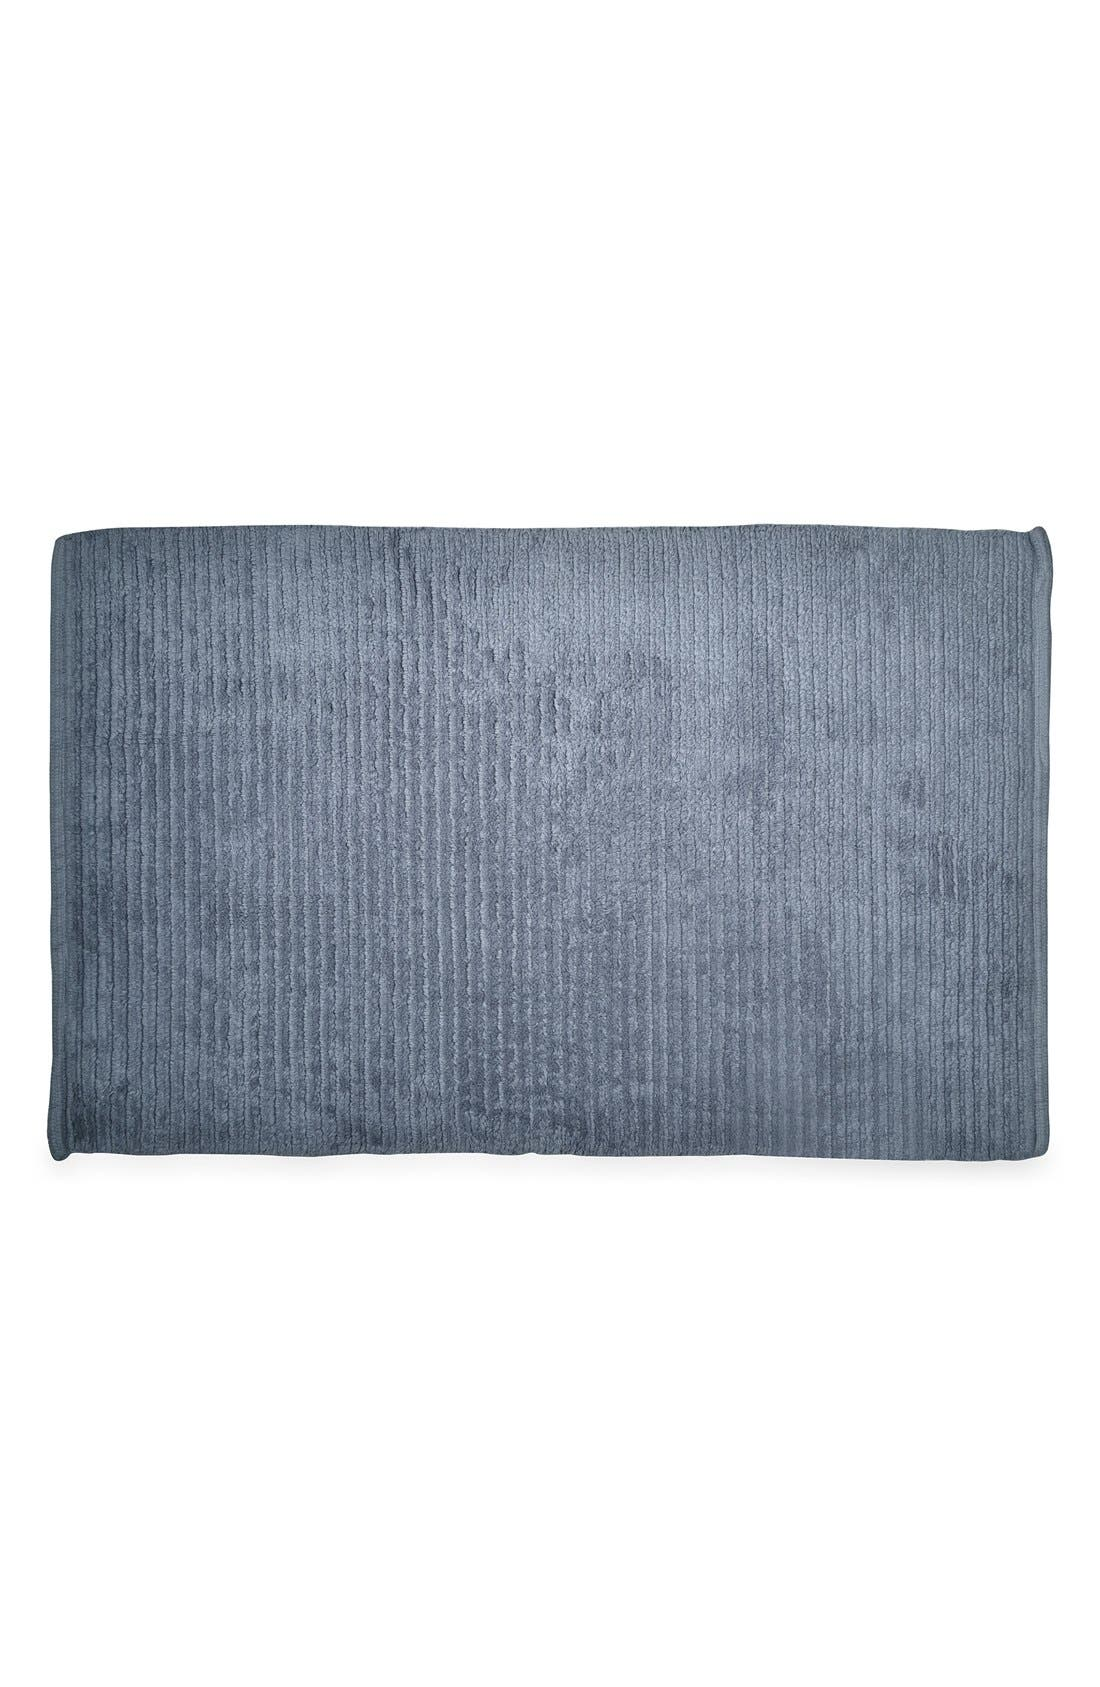 DKNY Mercer Bath Rug